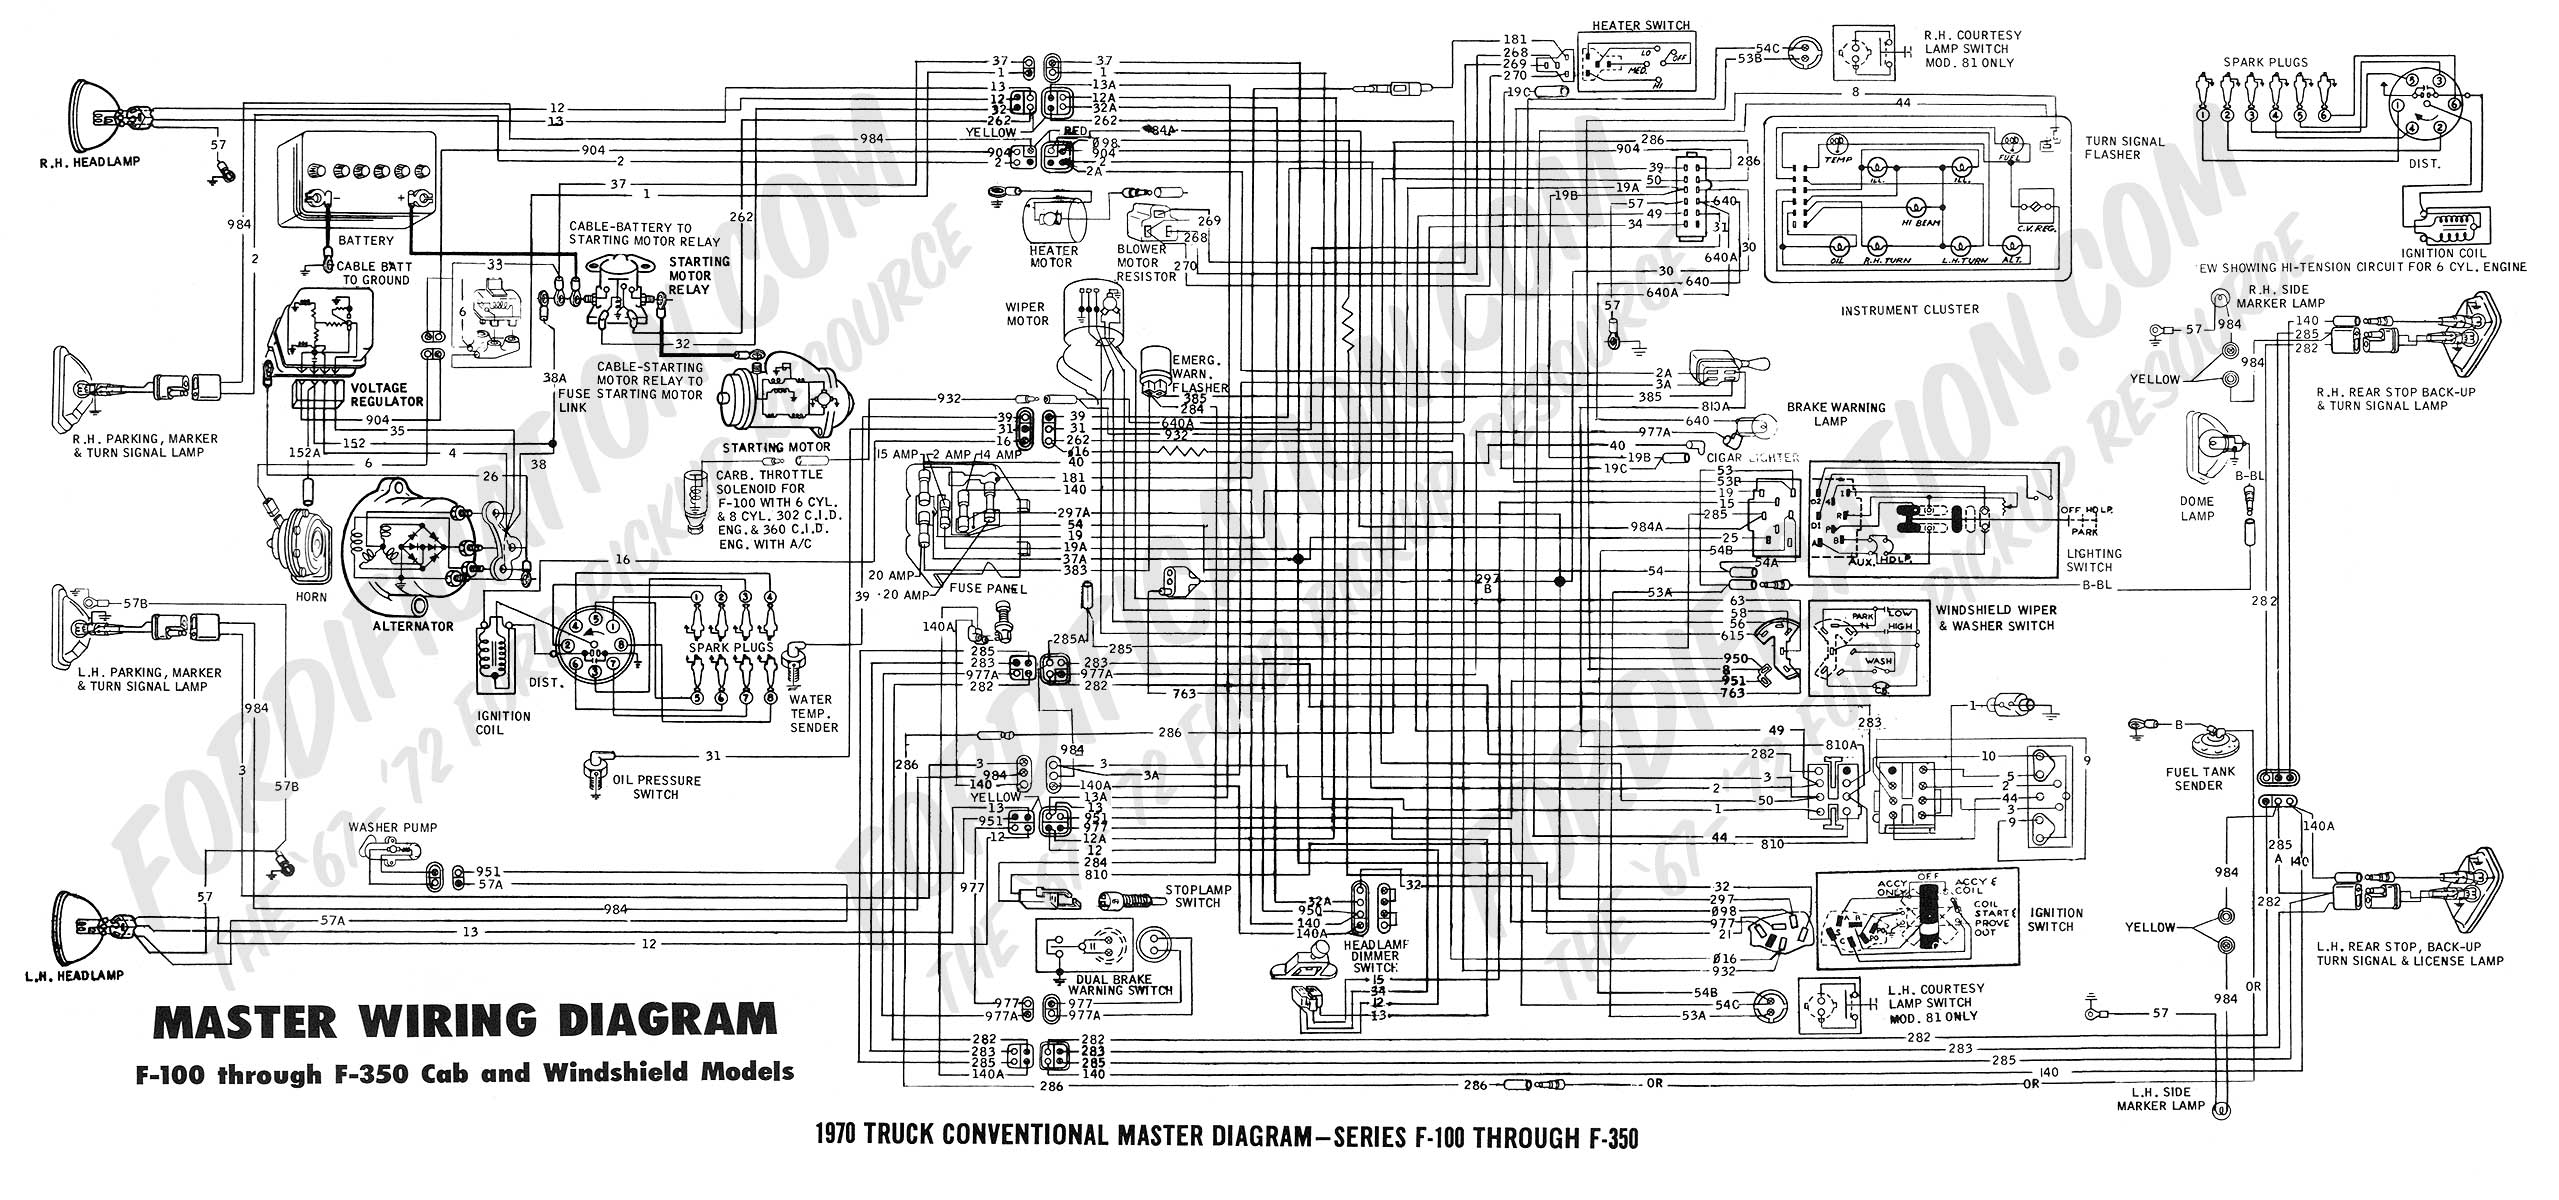 Sensational Wiring Diagram For 1972 Ford Mustang Diagram Data Schema Wiring Cloud Intelaidewilluminateatxorg